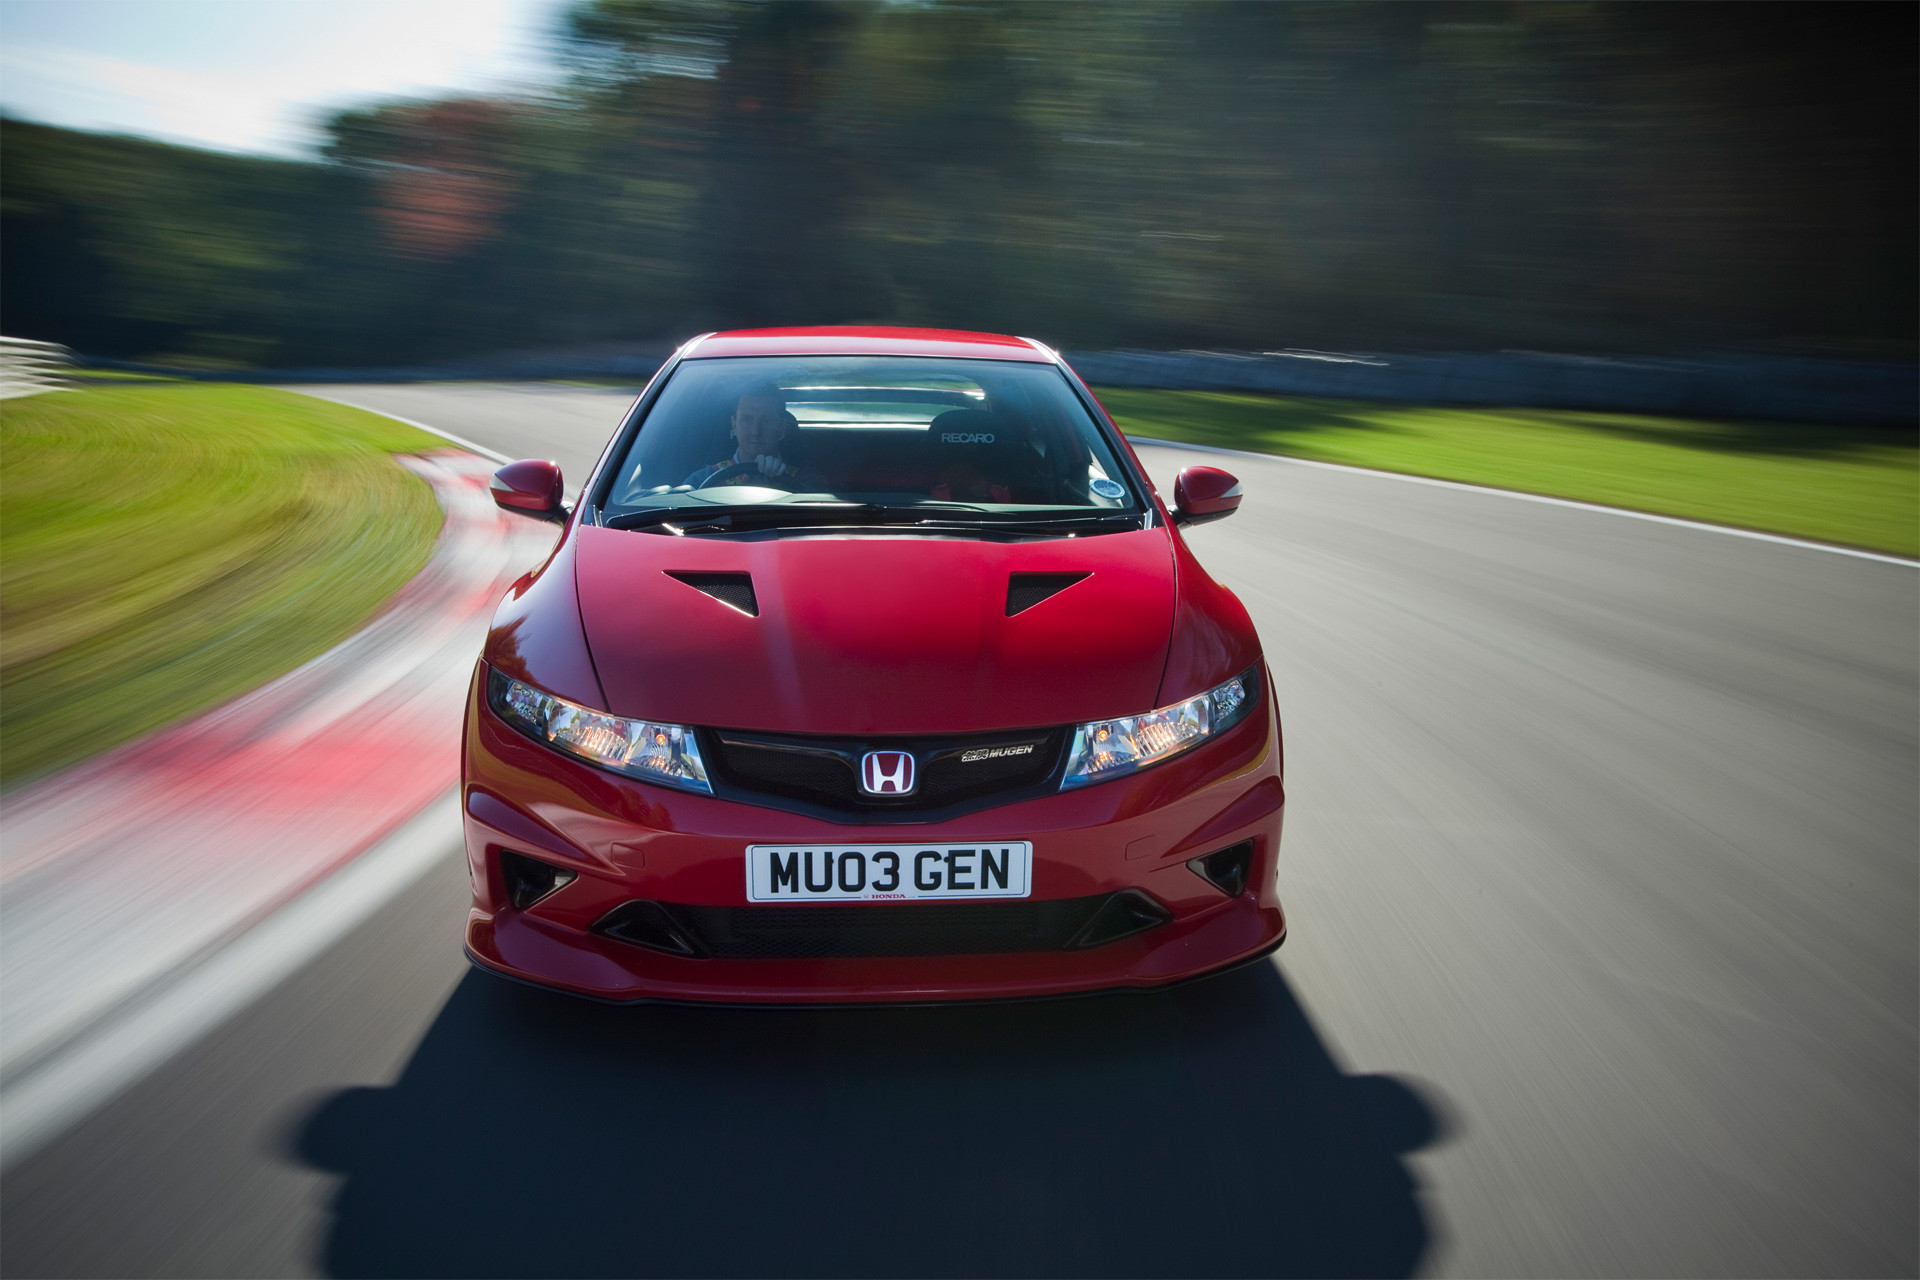 Res: 1920x1280,  Mugen Honda Civic Type R picture # 71003 Mugen photo gallery .